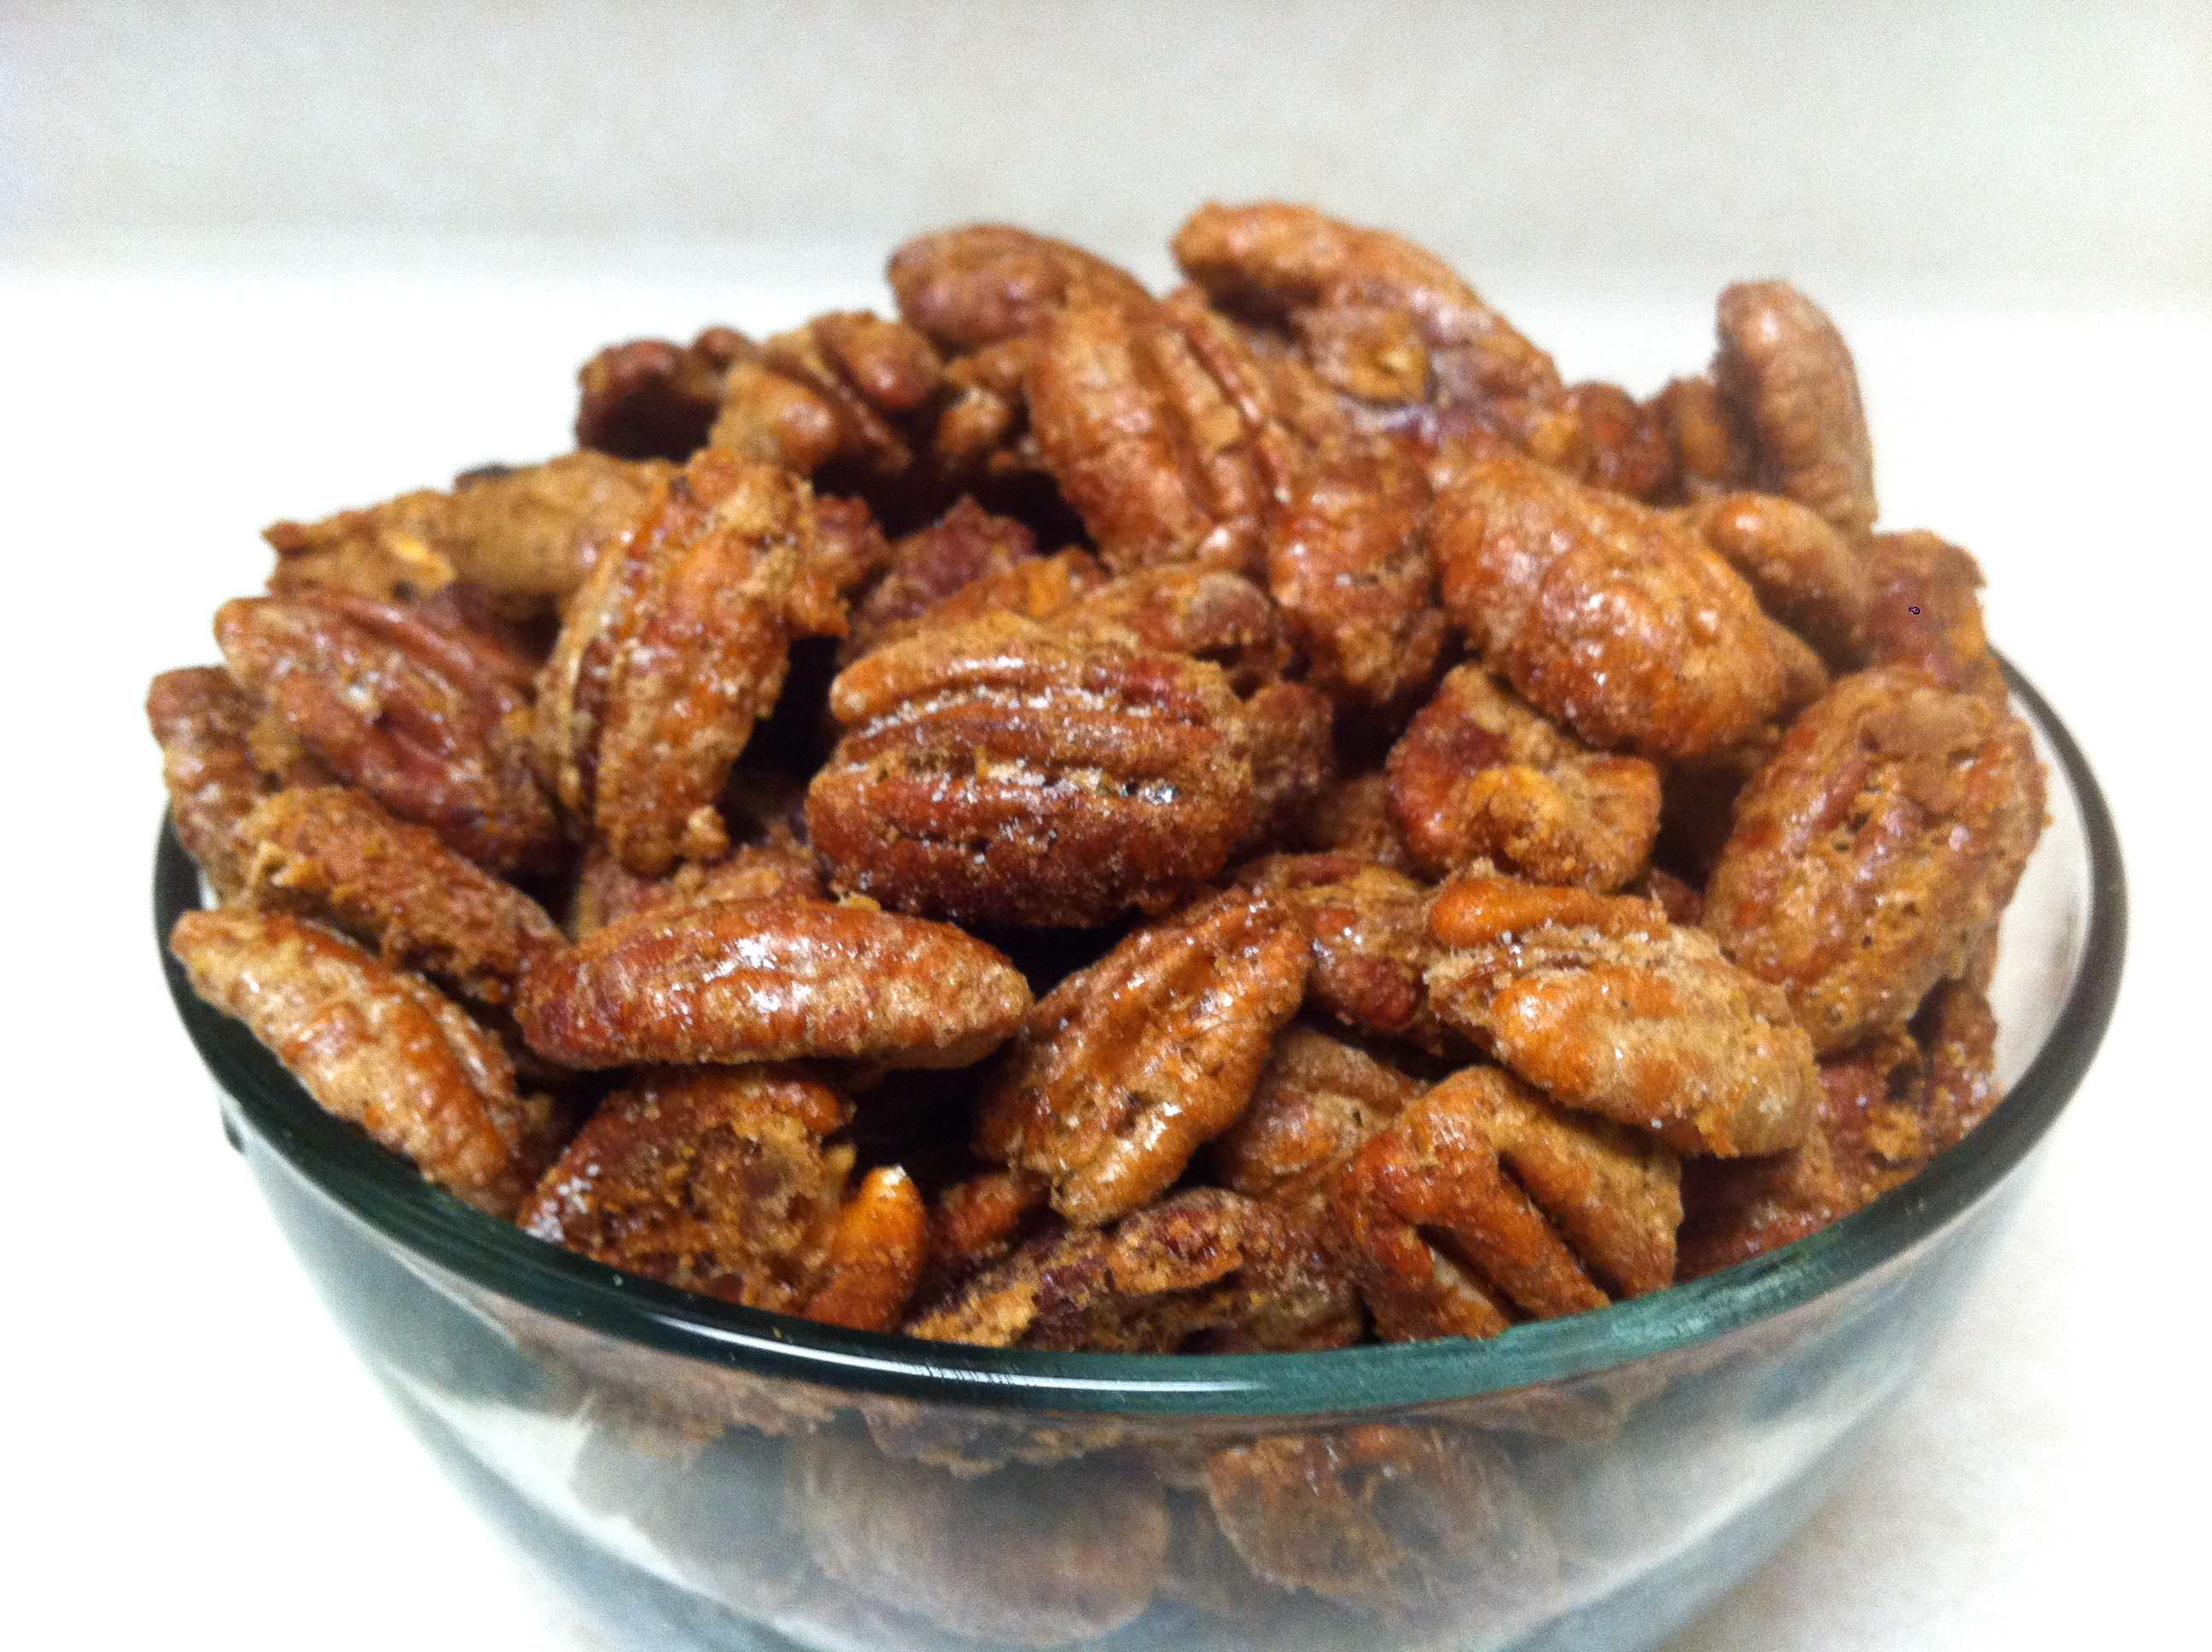 ... candied pecans 4 oh so yummy holiday spiced candied pecans candied